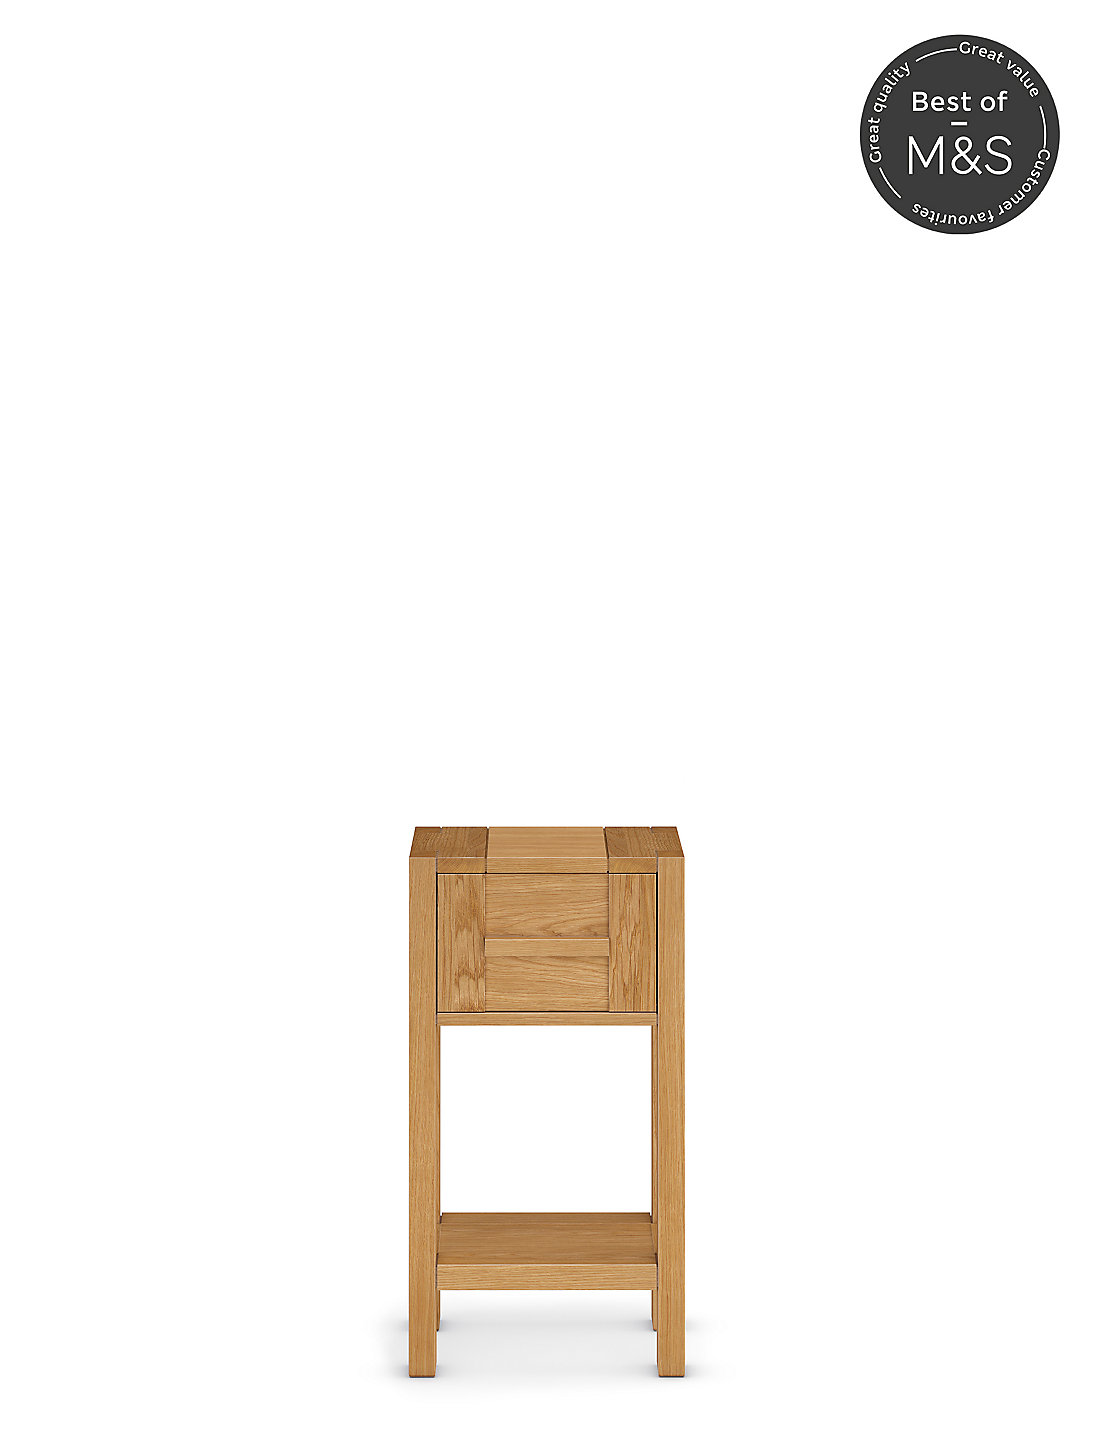 Bedside Dressing Tables Small Narrow M S